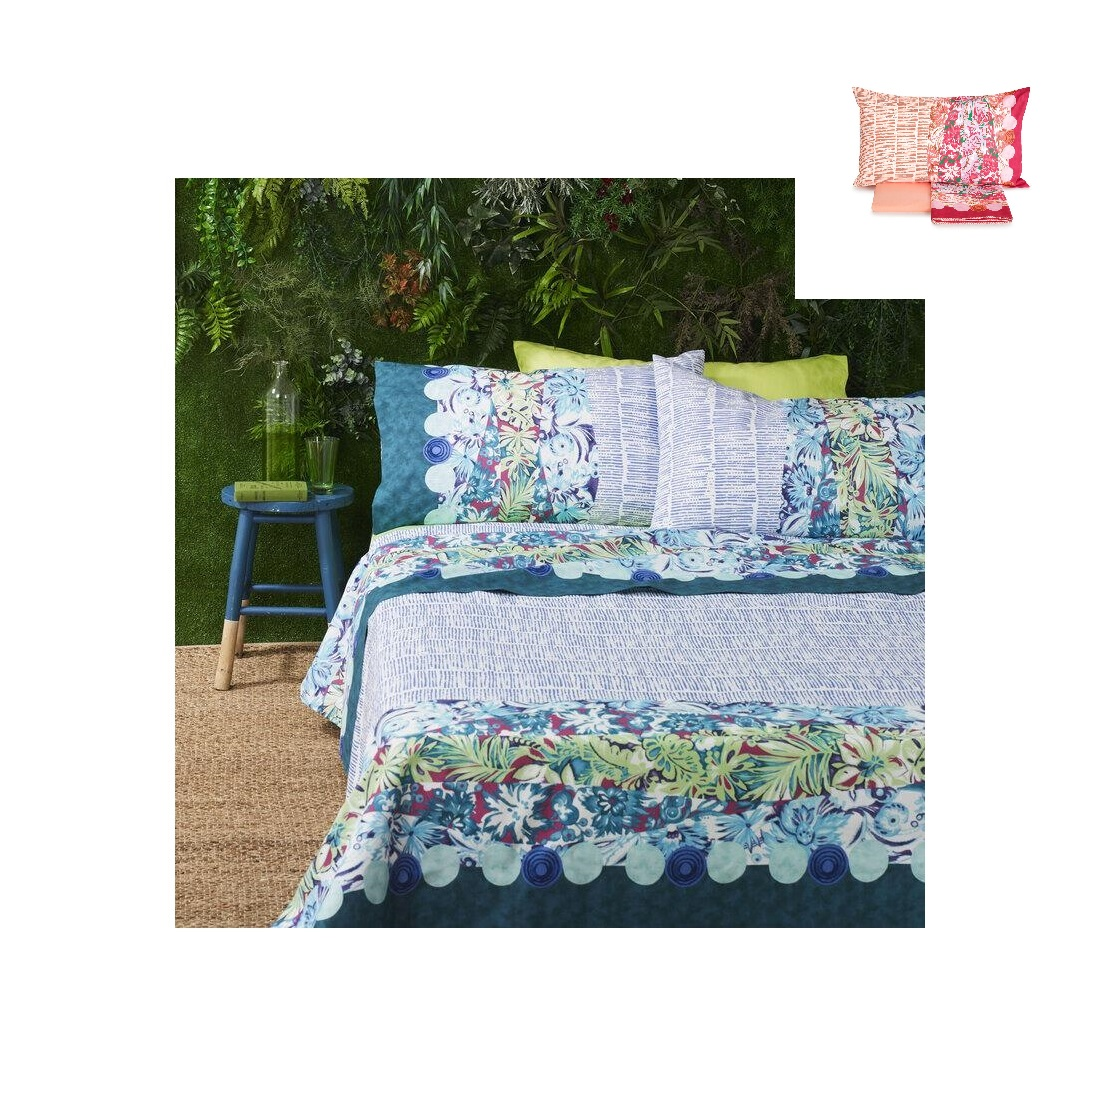 Lenzuola Bassetti Matrimoniale Outdoor Puro Cotone Made In Italy